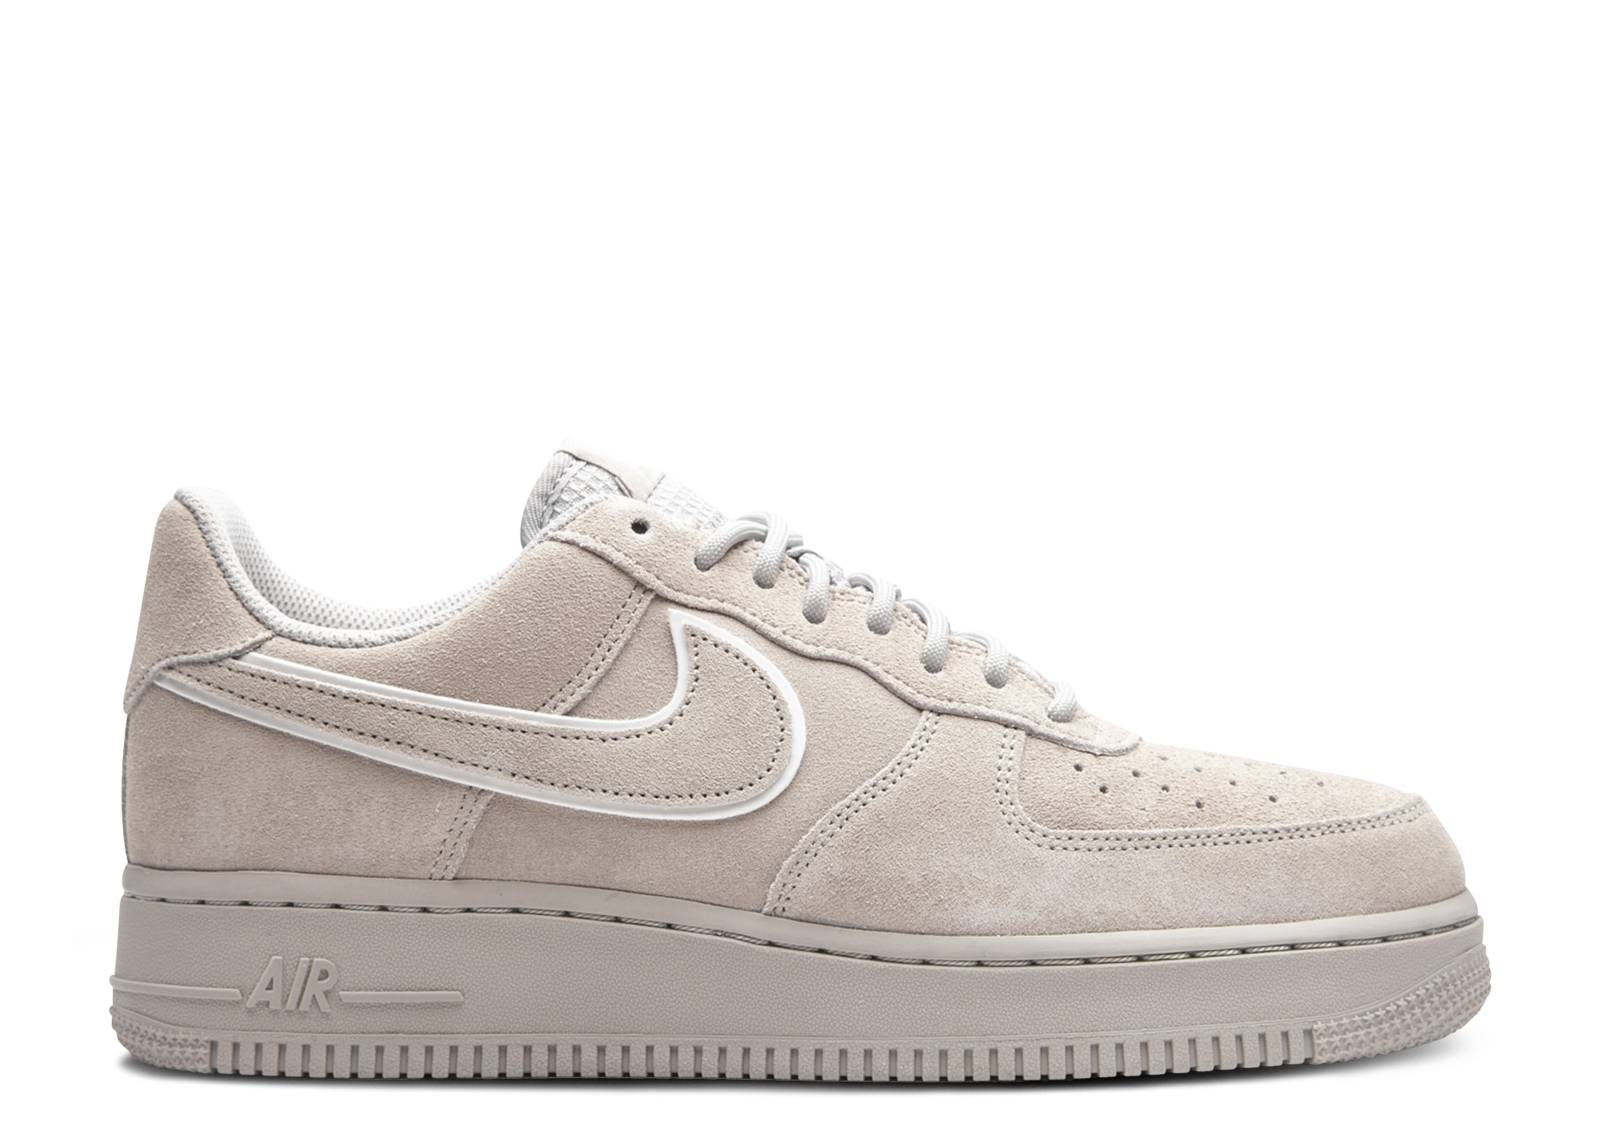 374d400b281a9 Air Force 1 '07 Lv8 Suede